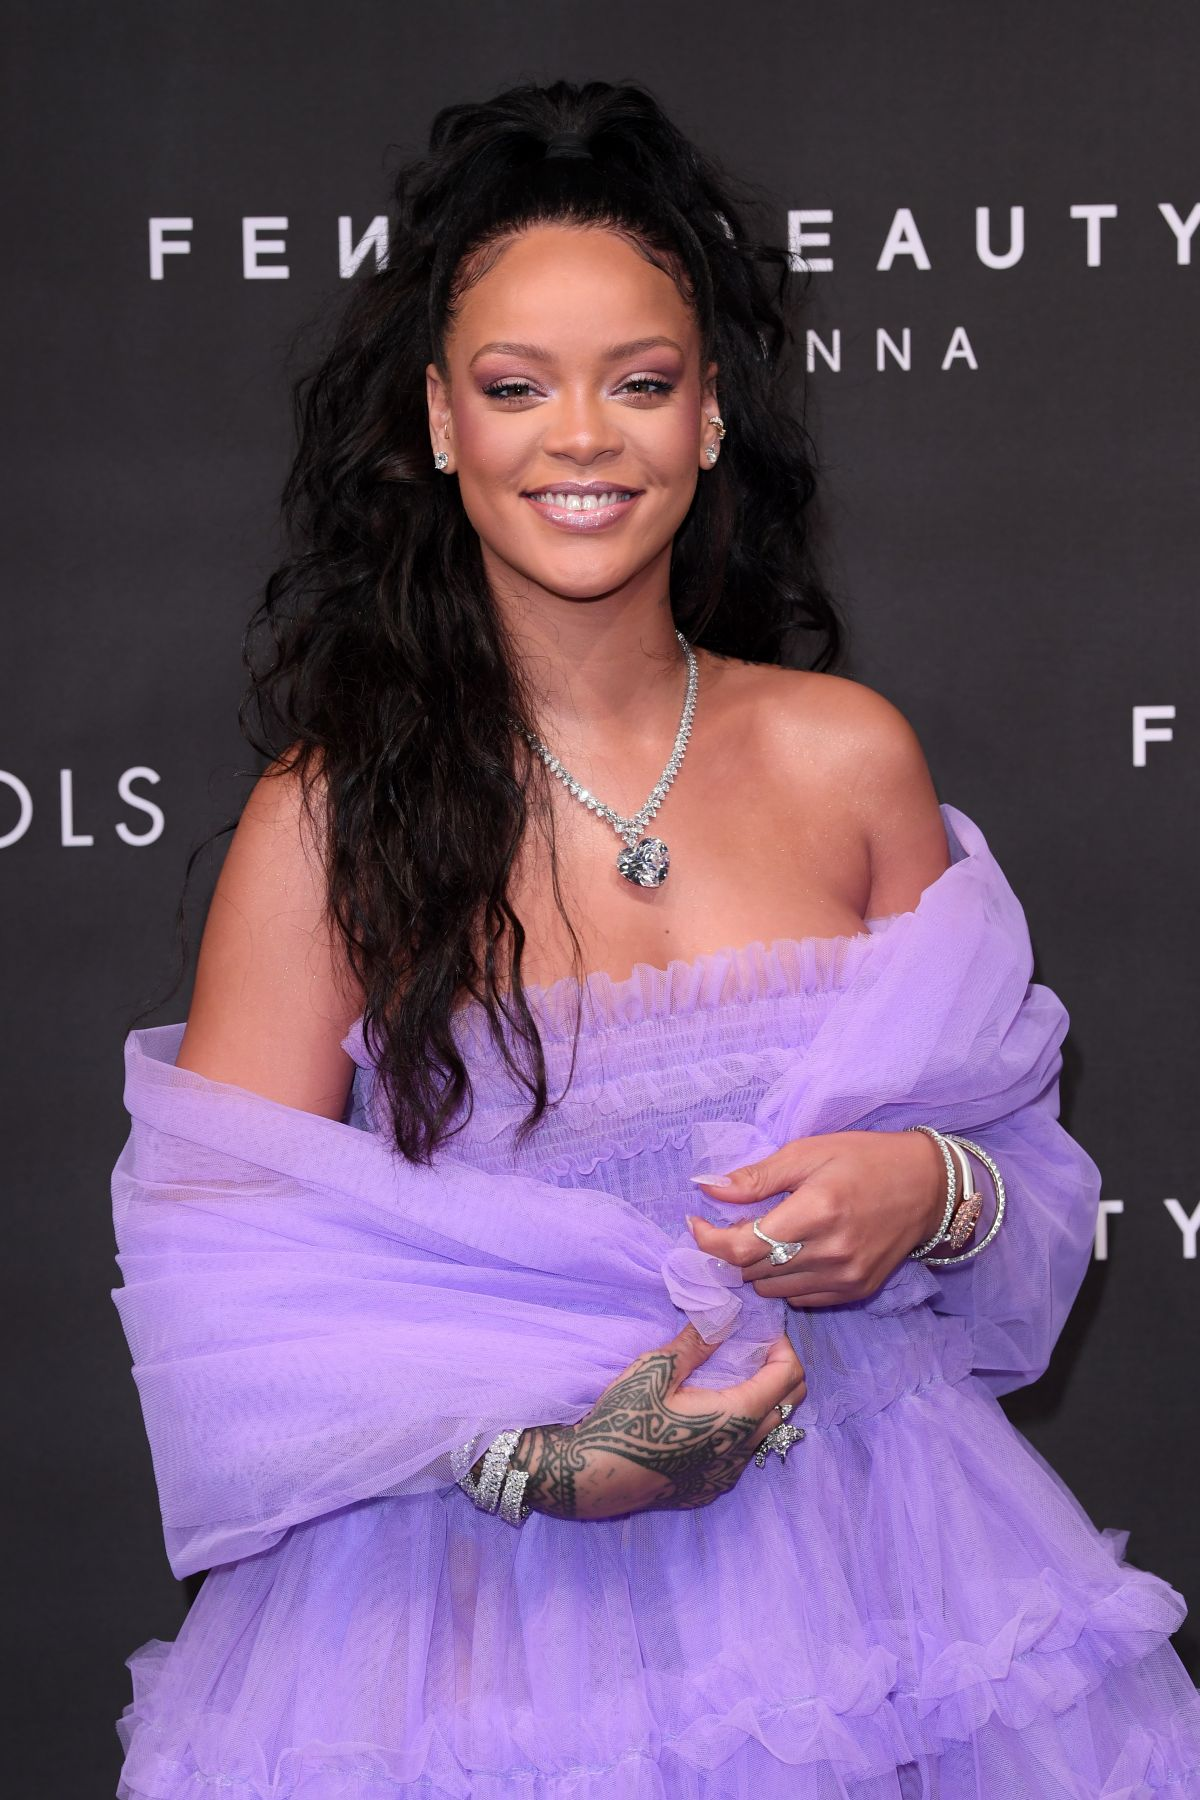 Beauty Launch The Mac Punk Couture Collection: RIHANNA At Fenty Beauty Launch Party In London 09/19/2017